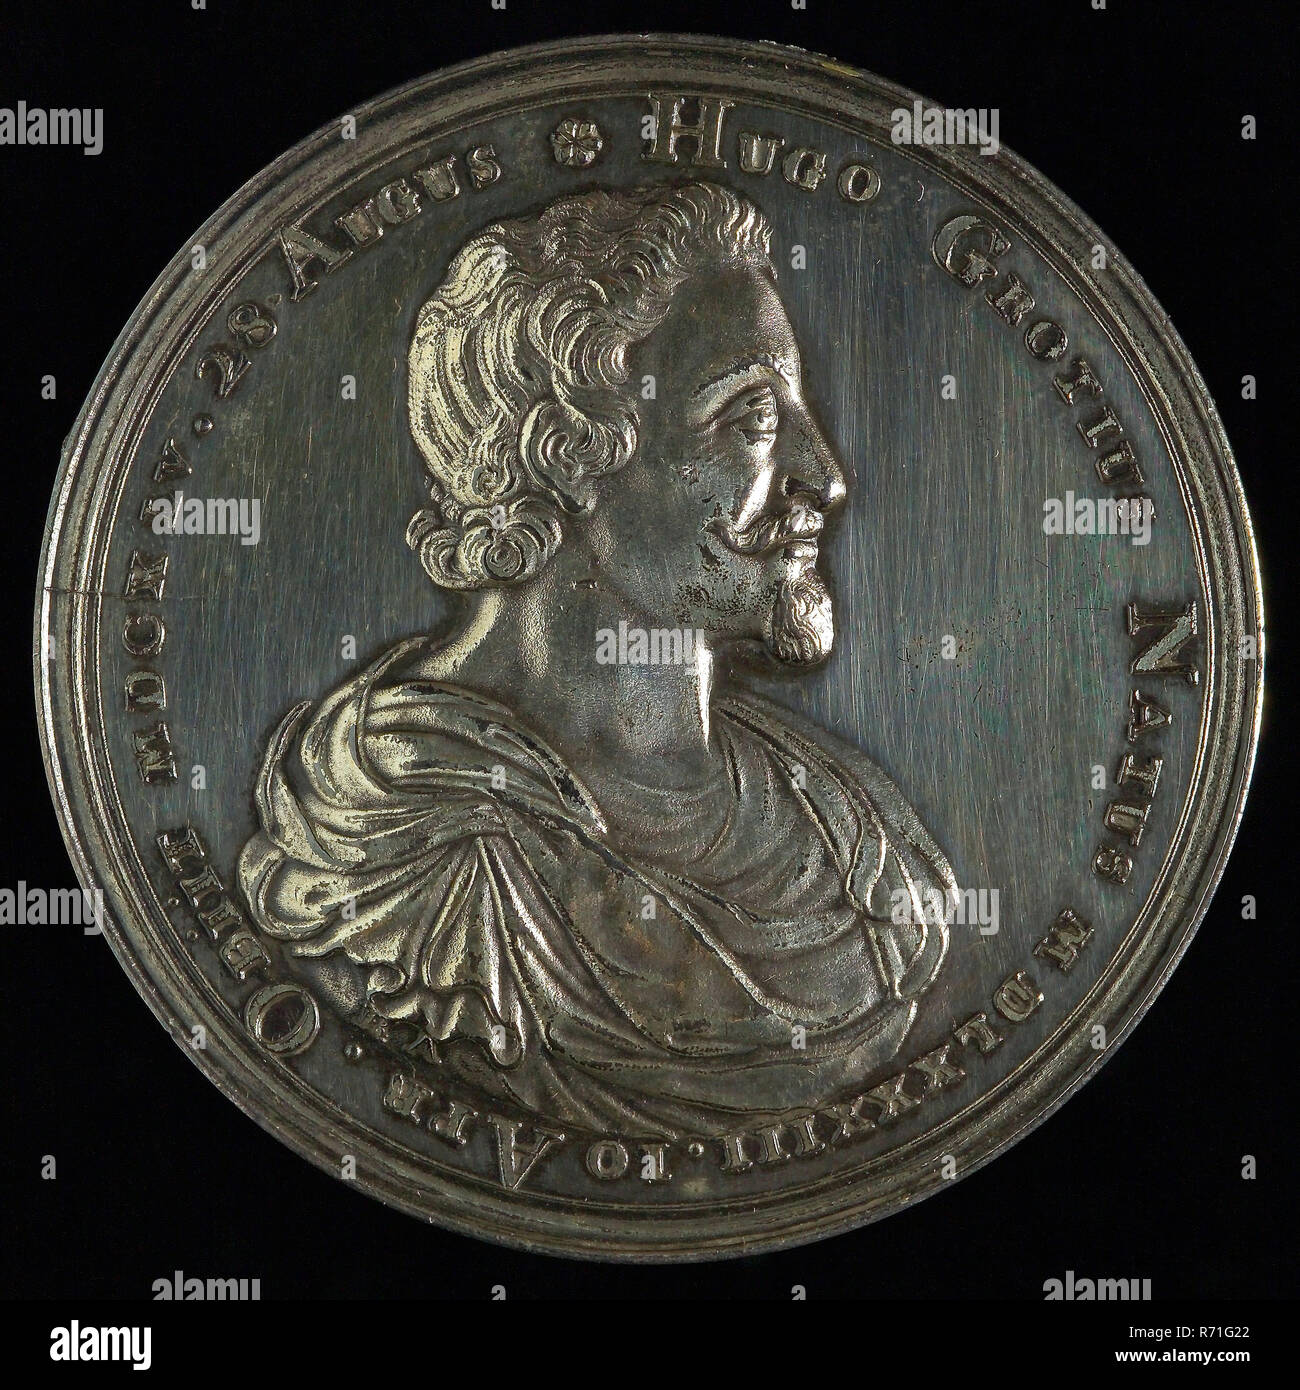 Reinier Arondeaux, Medal on the death of Hugo de Groot in